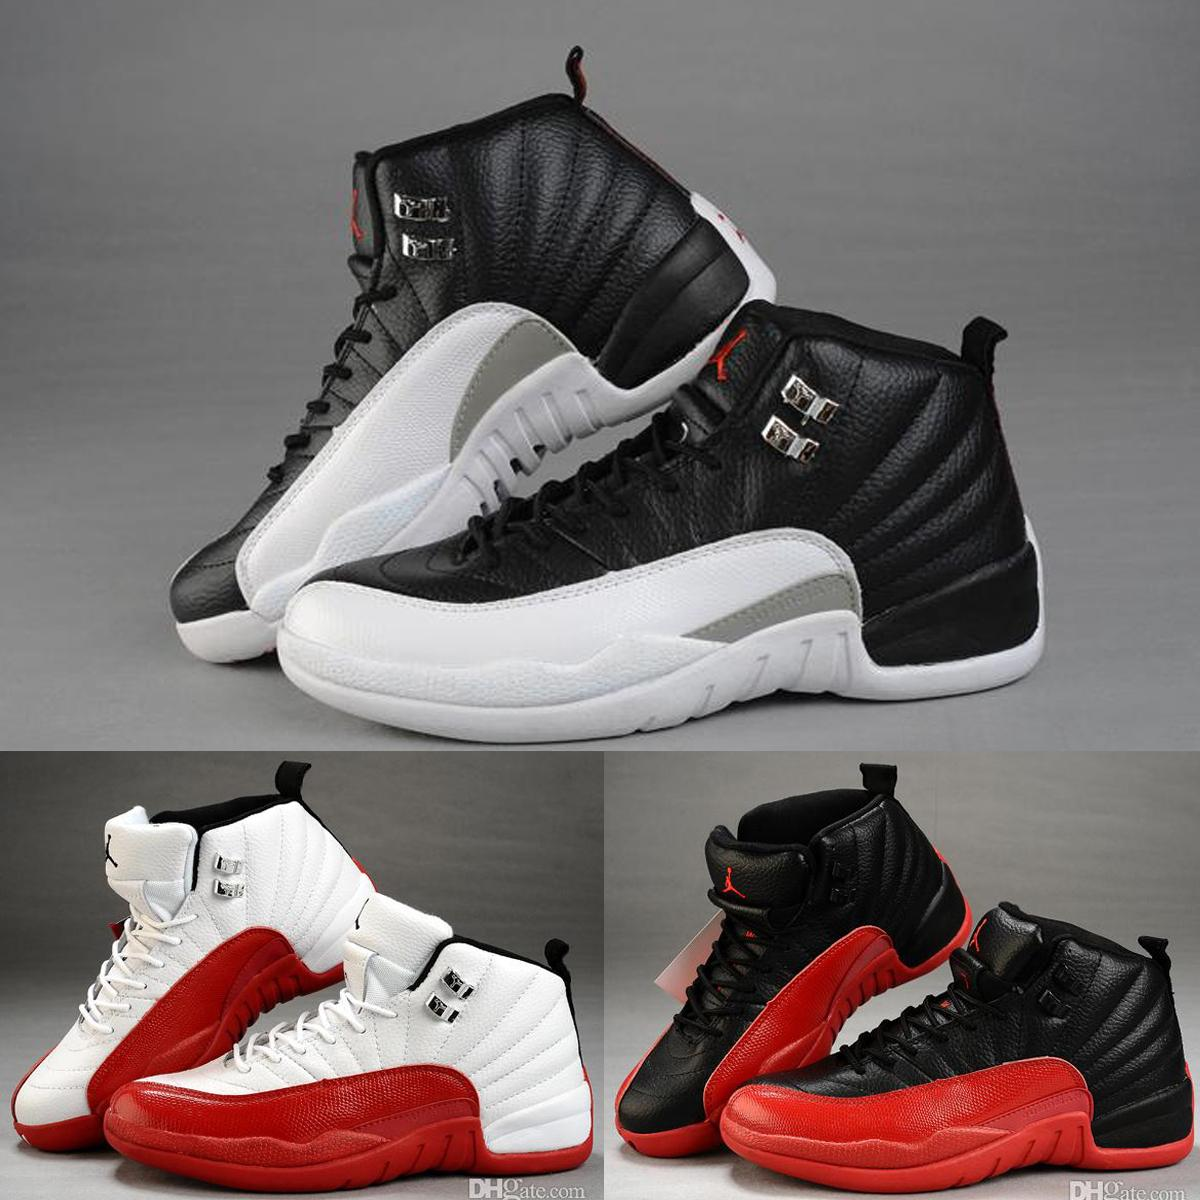 brand new 62793 3c73d Nike Air Jordan 12 Xii Taxi Playoff Black Flu Game Cherry Mens Womens  Basketball Shoes, Brand New AJ12 Retro 12 XII Men Sneakers J12s US8 13  Barkley Shoes ...